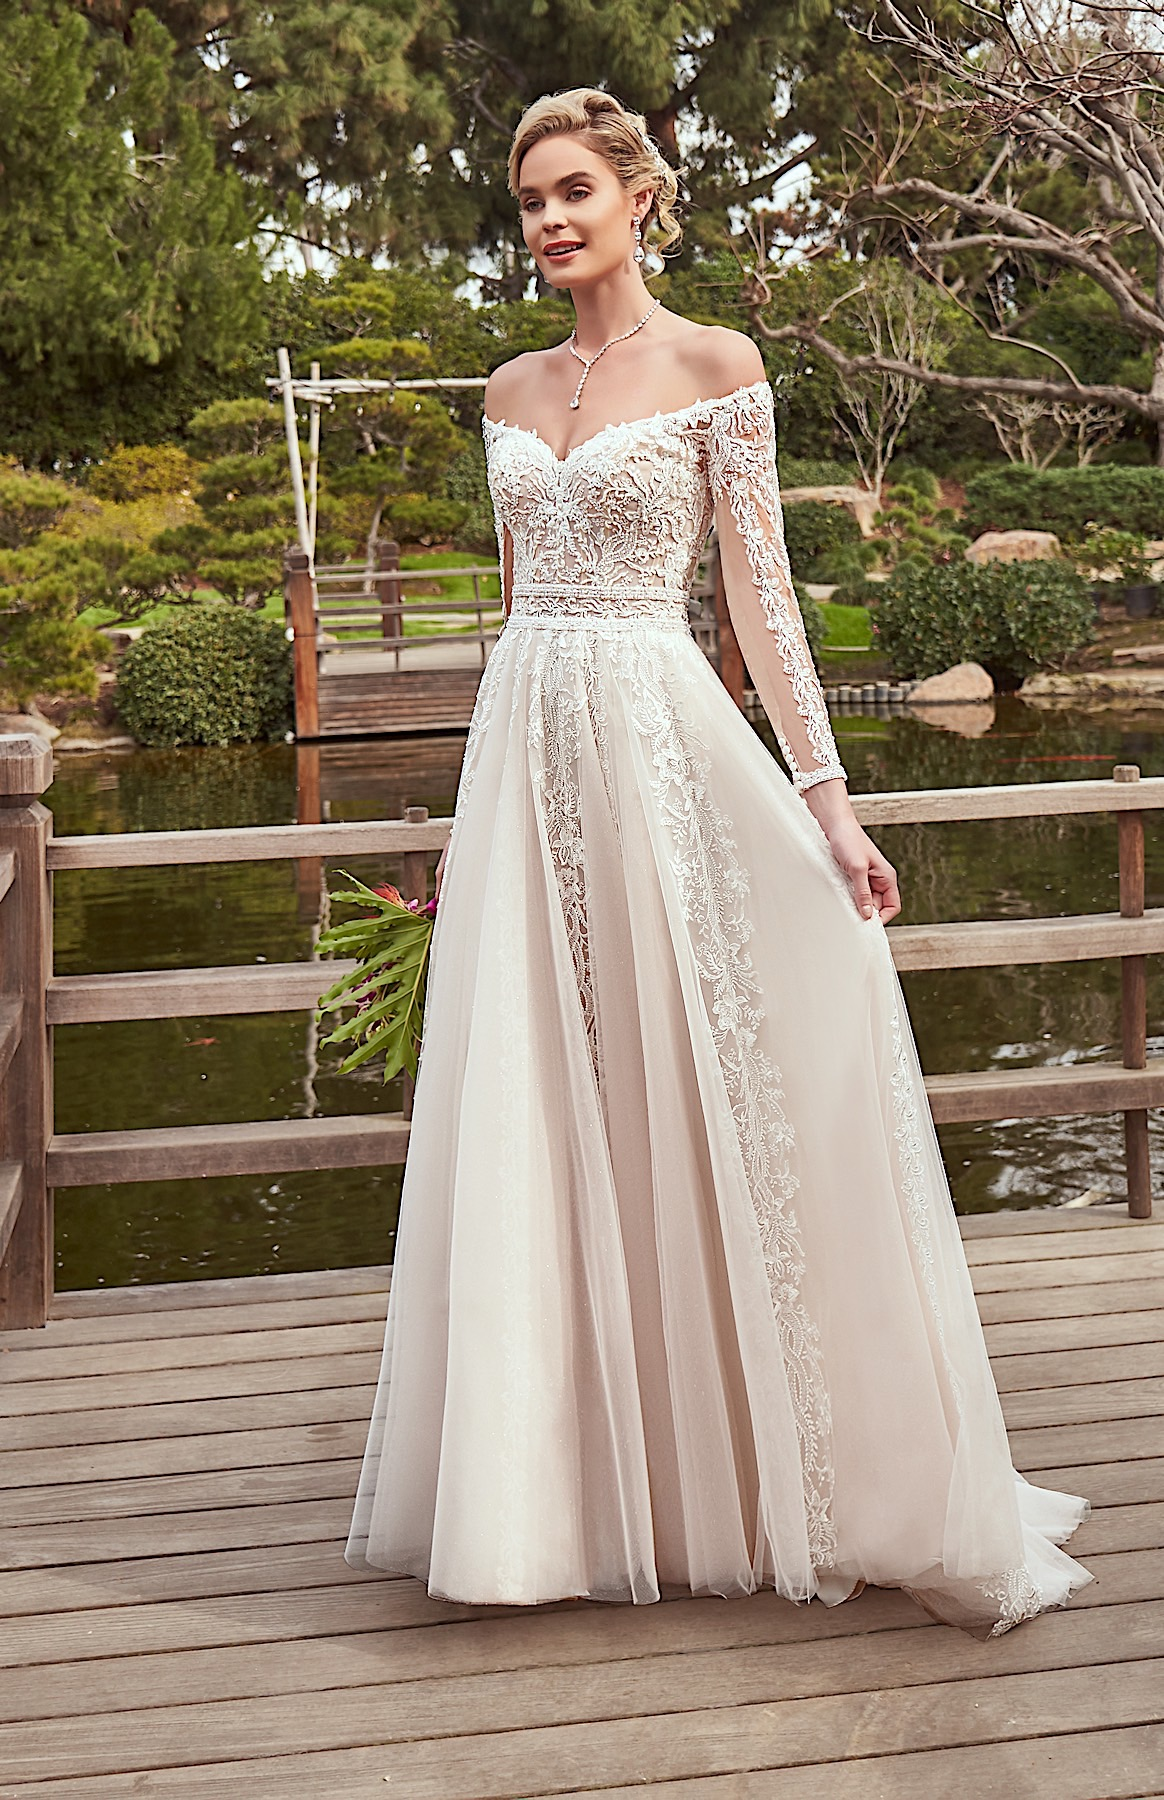 Wedding Gowns Gold Coast Bridal Dresses And Gowns In Brisbane